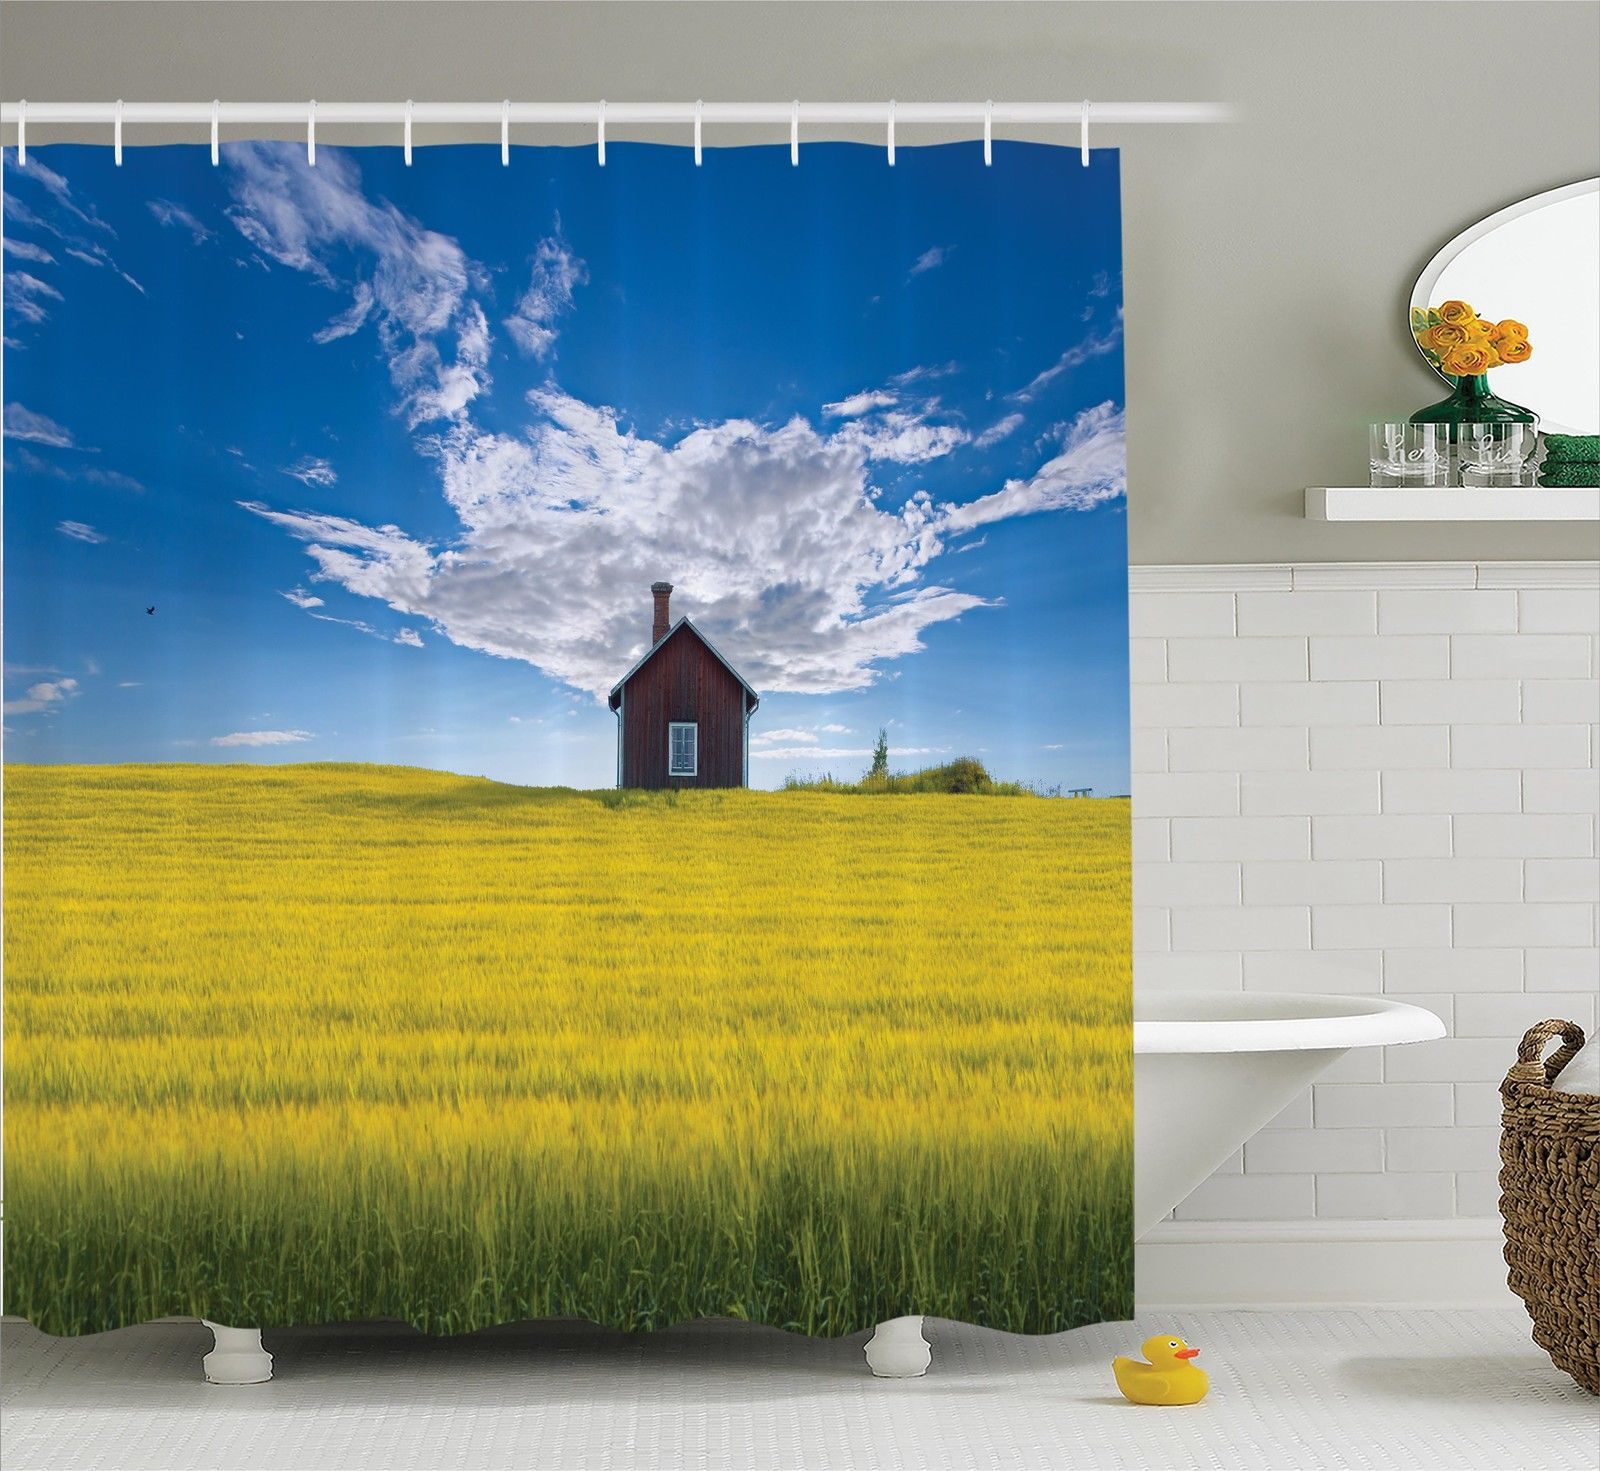 Farm House Decor Shower Curtain Set, Traditional Red Scandinavian Summerhouse In Yellow Oat Field Nordic Tranquility Theme, Bathroom Accessories, 69W X 70L Inches, By Ambesonne